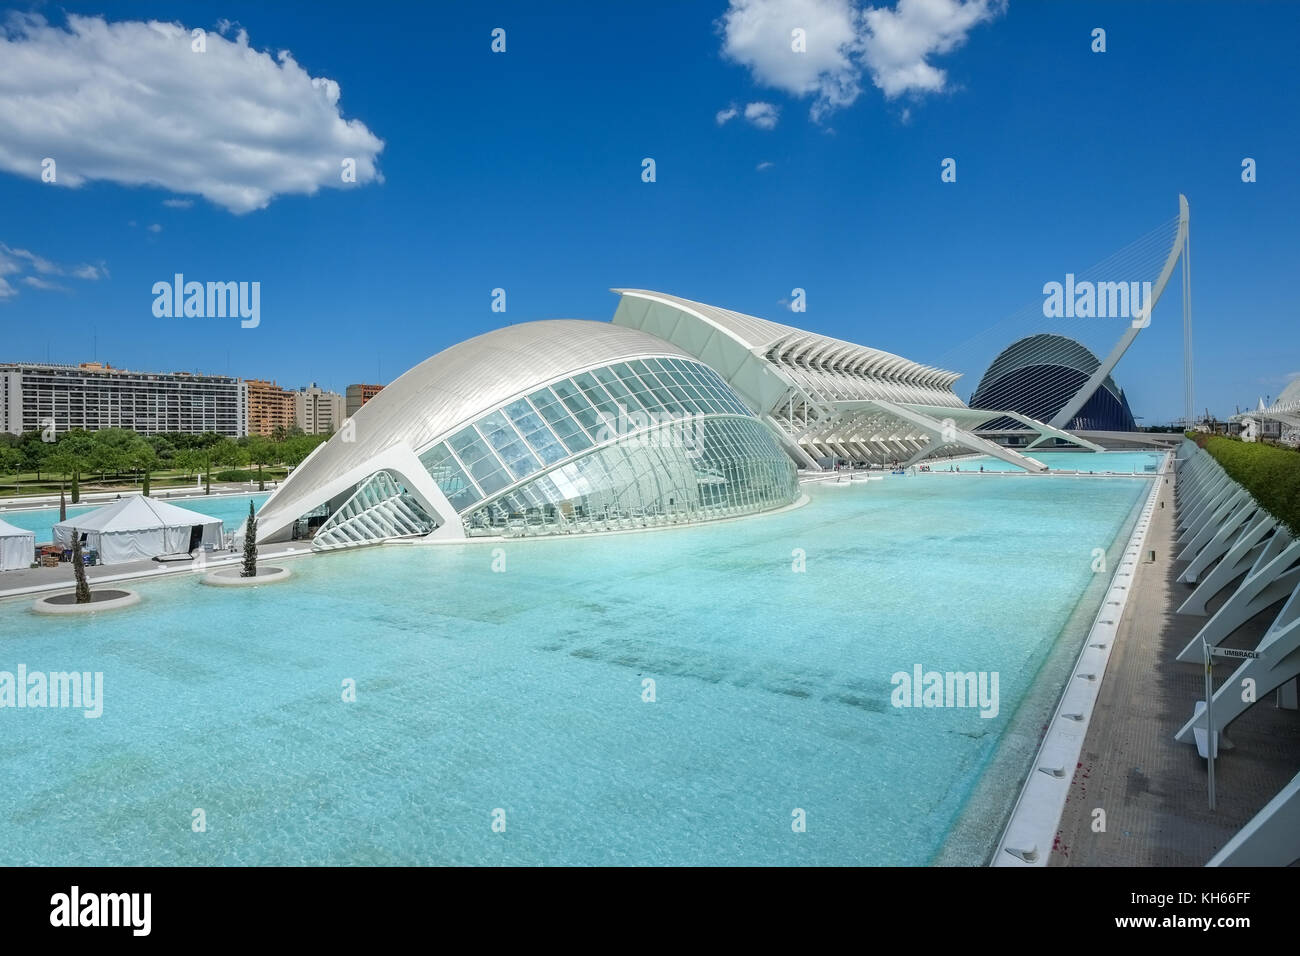 City of Arts and Sciences in Valencia, Spain - Stock Image